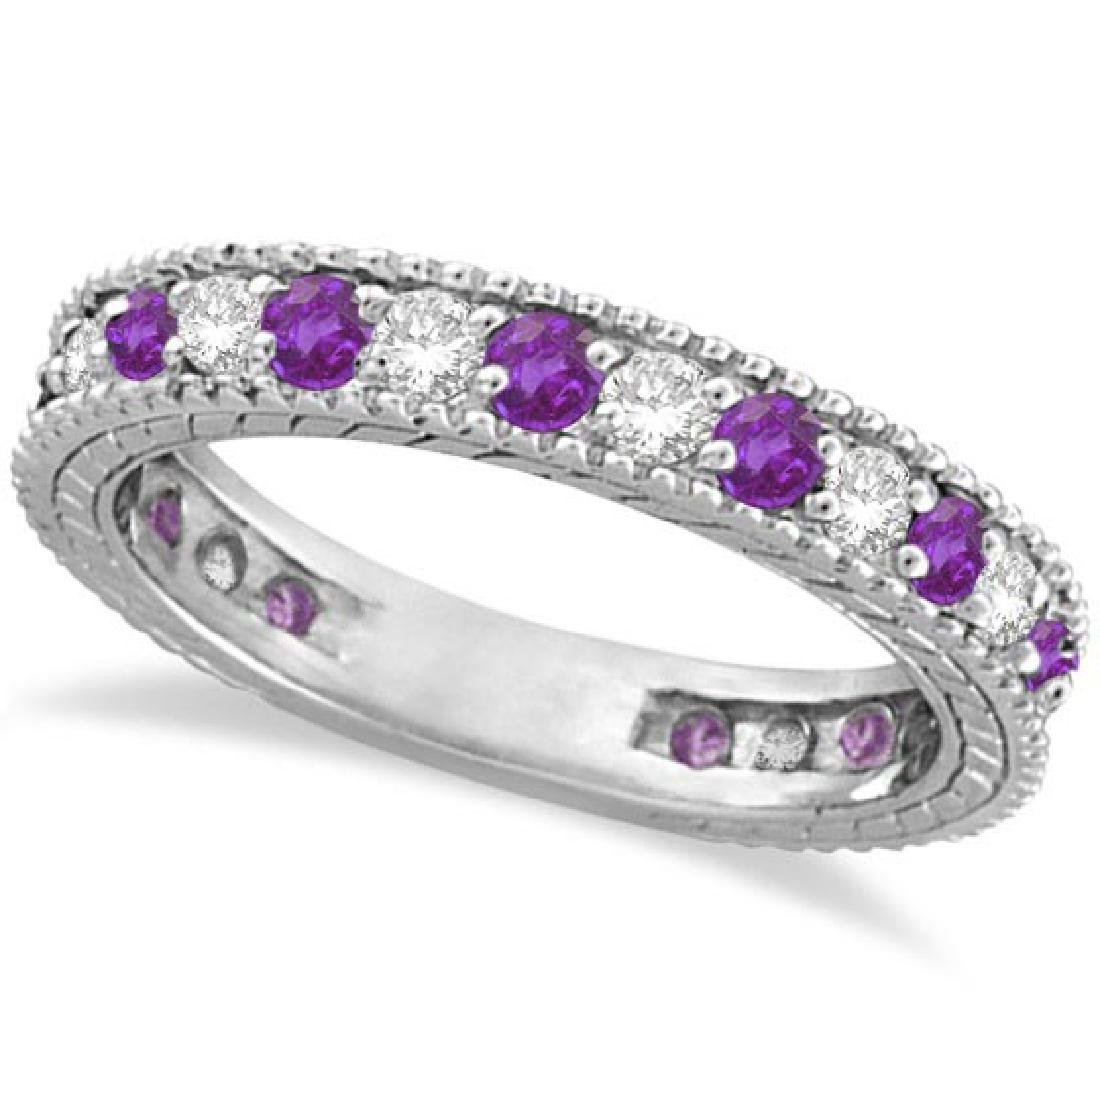 Diamond and Amethyst Eternity Ring Band 14k White Gold